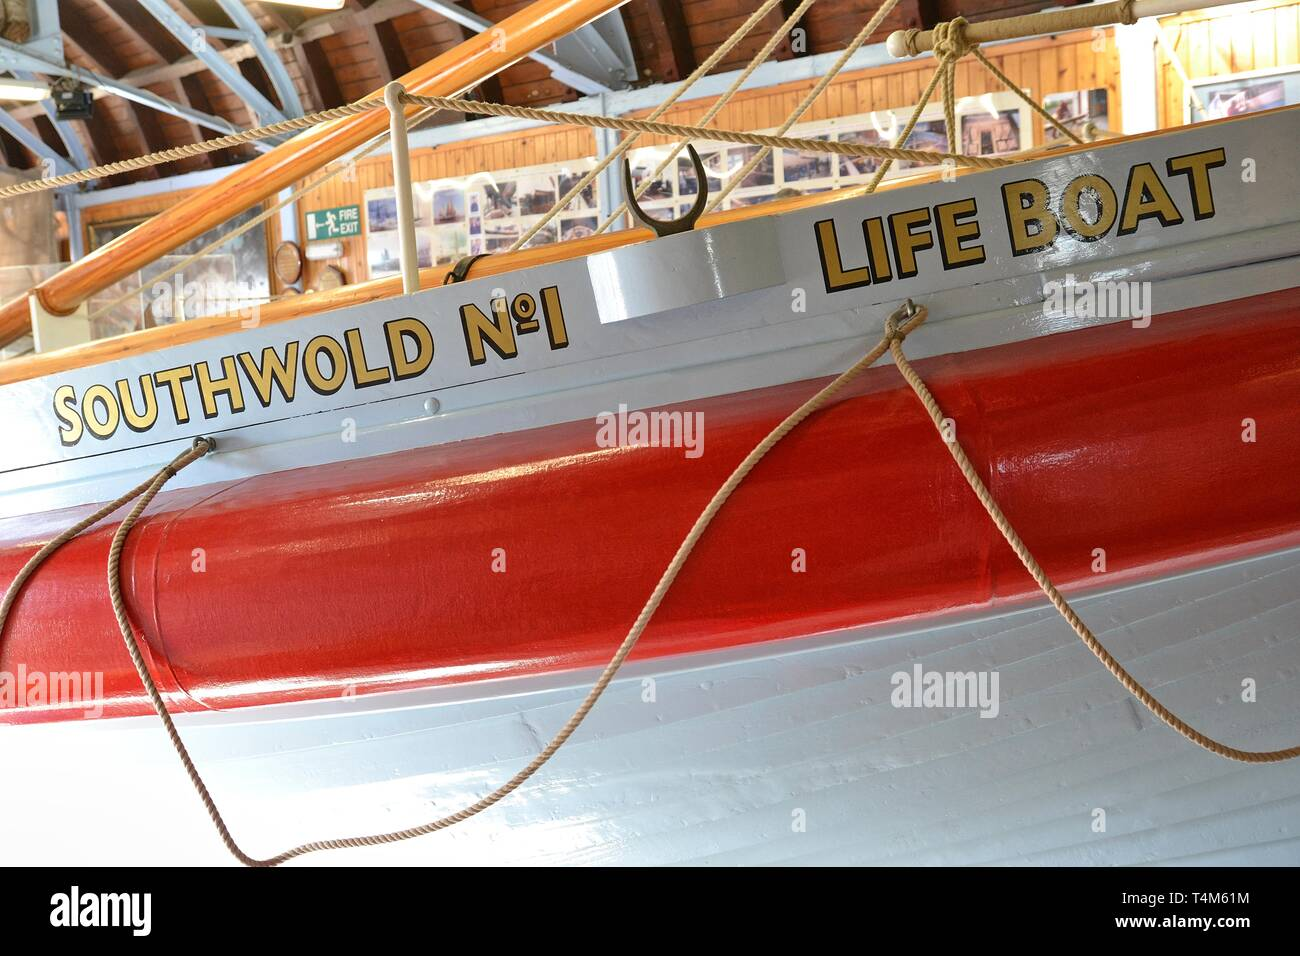 Alfred Corry Lifeboat Museum, Southwold, Suffolk, UK Stock Photo